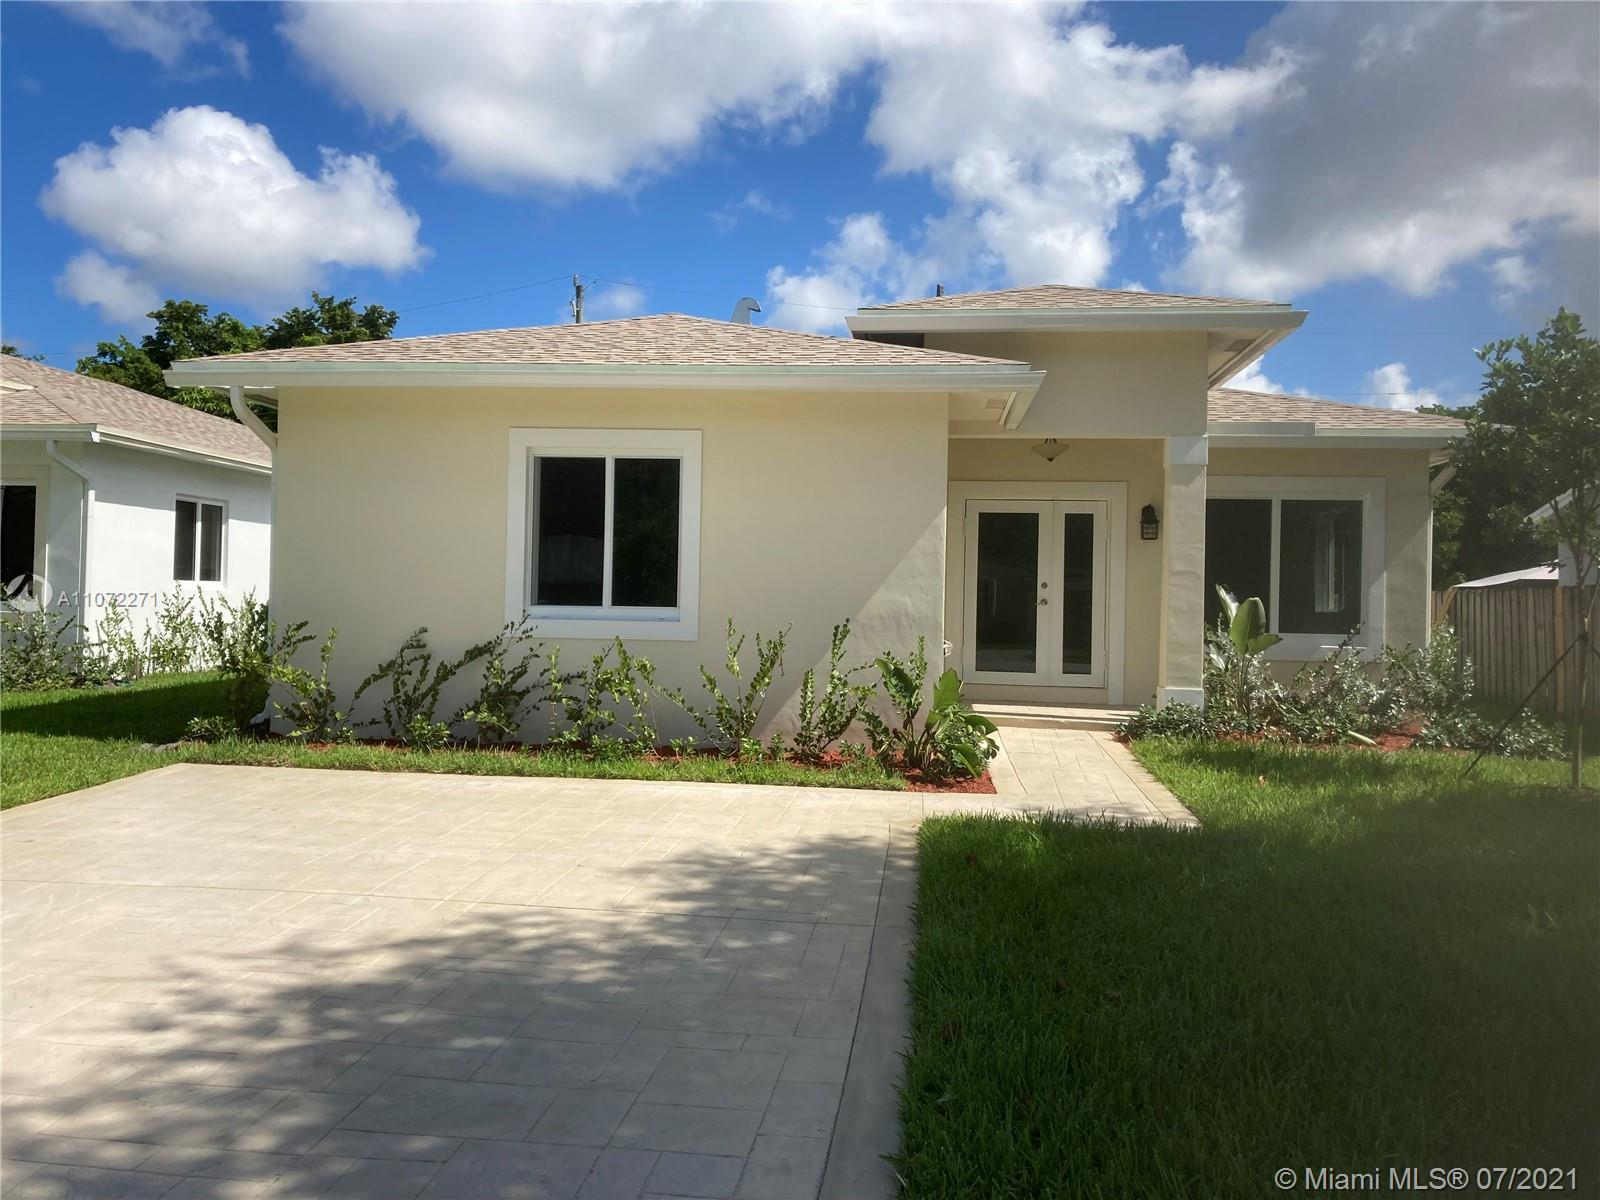 Three Newly built Beautiful modern single family home side by side with 3 bedroom , master bedroom a